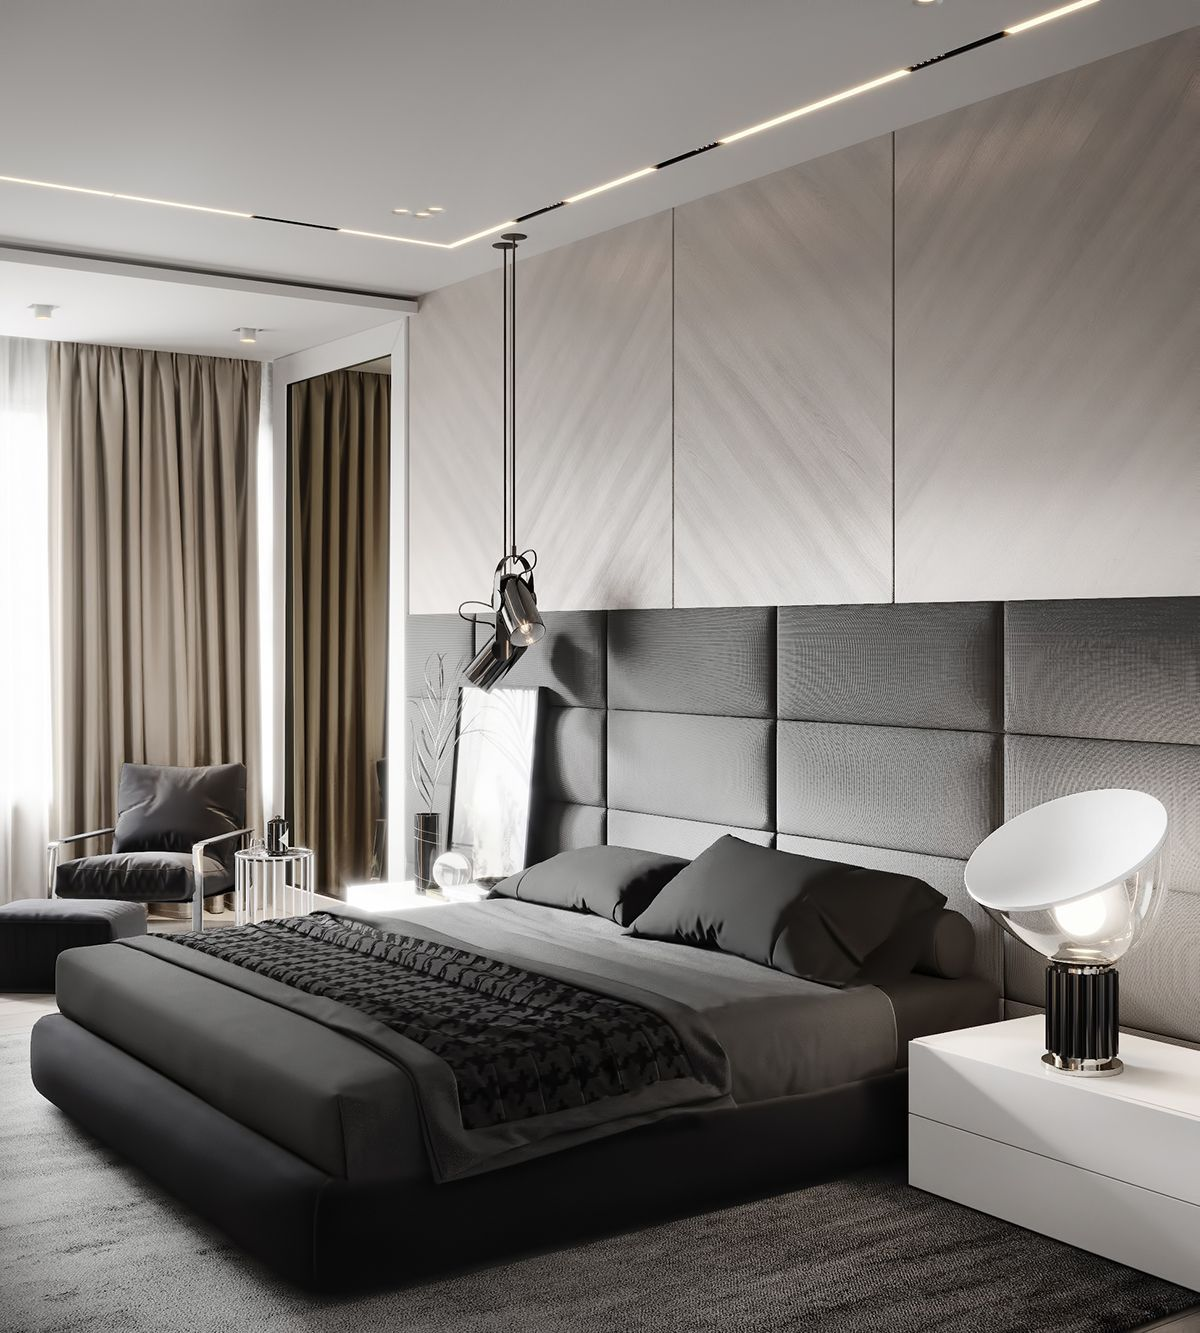 Check Out The Most Amazing Residential Interior Designs Ever Www Delightfull Eu Visit Us In 2020 Modern Bedroom Interior Luxurious Bedrooms Modern Bedroom Design